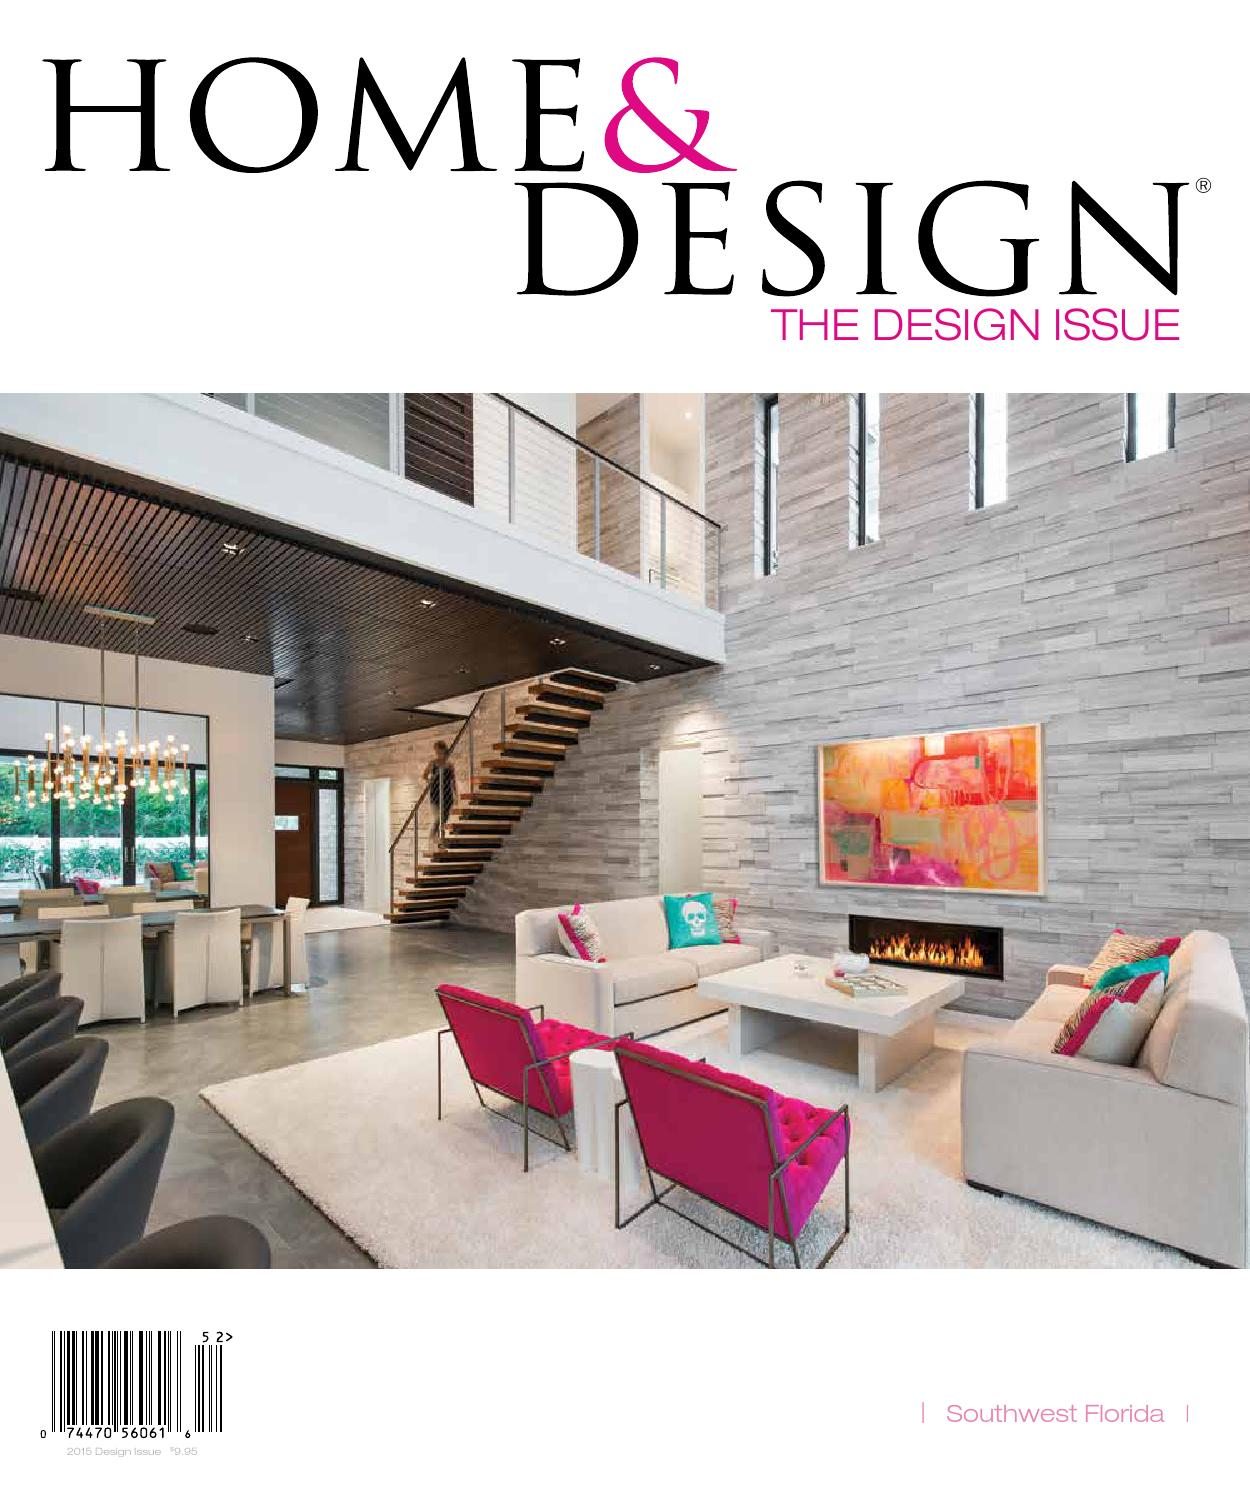 Home Design Magazine Design Issue 2015 Southwest Florida Edition By Anthony Spano Issuu